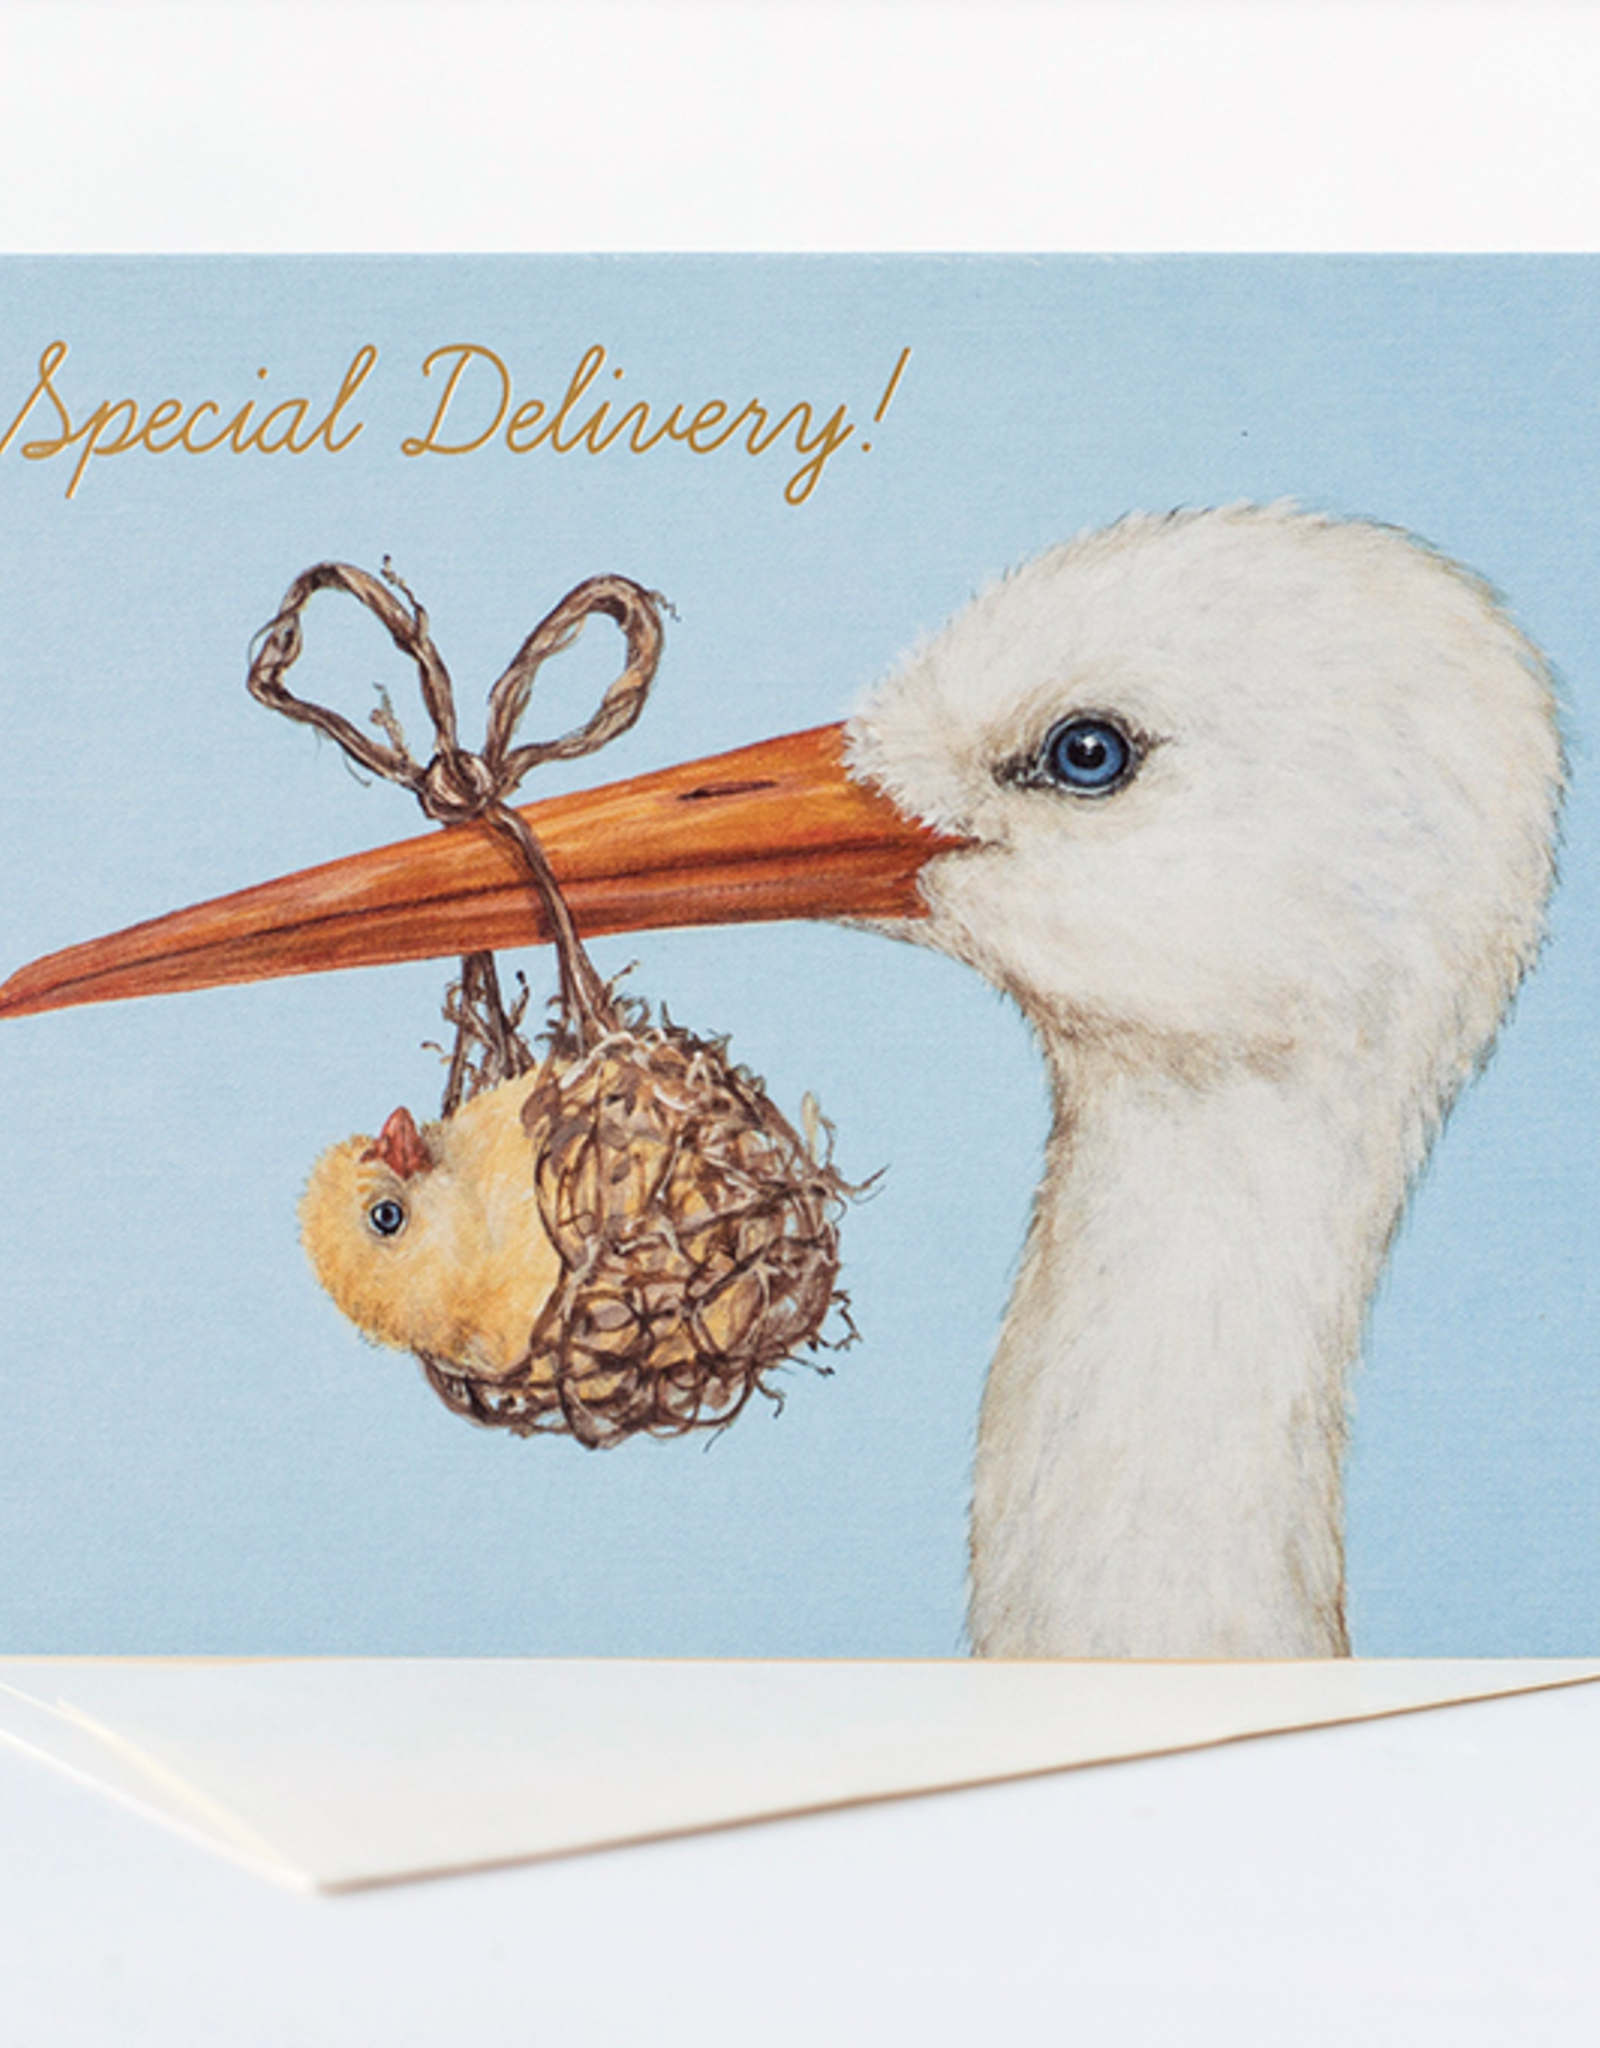 New Card - Special Delivery